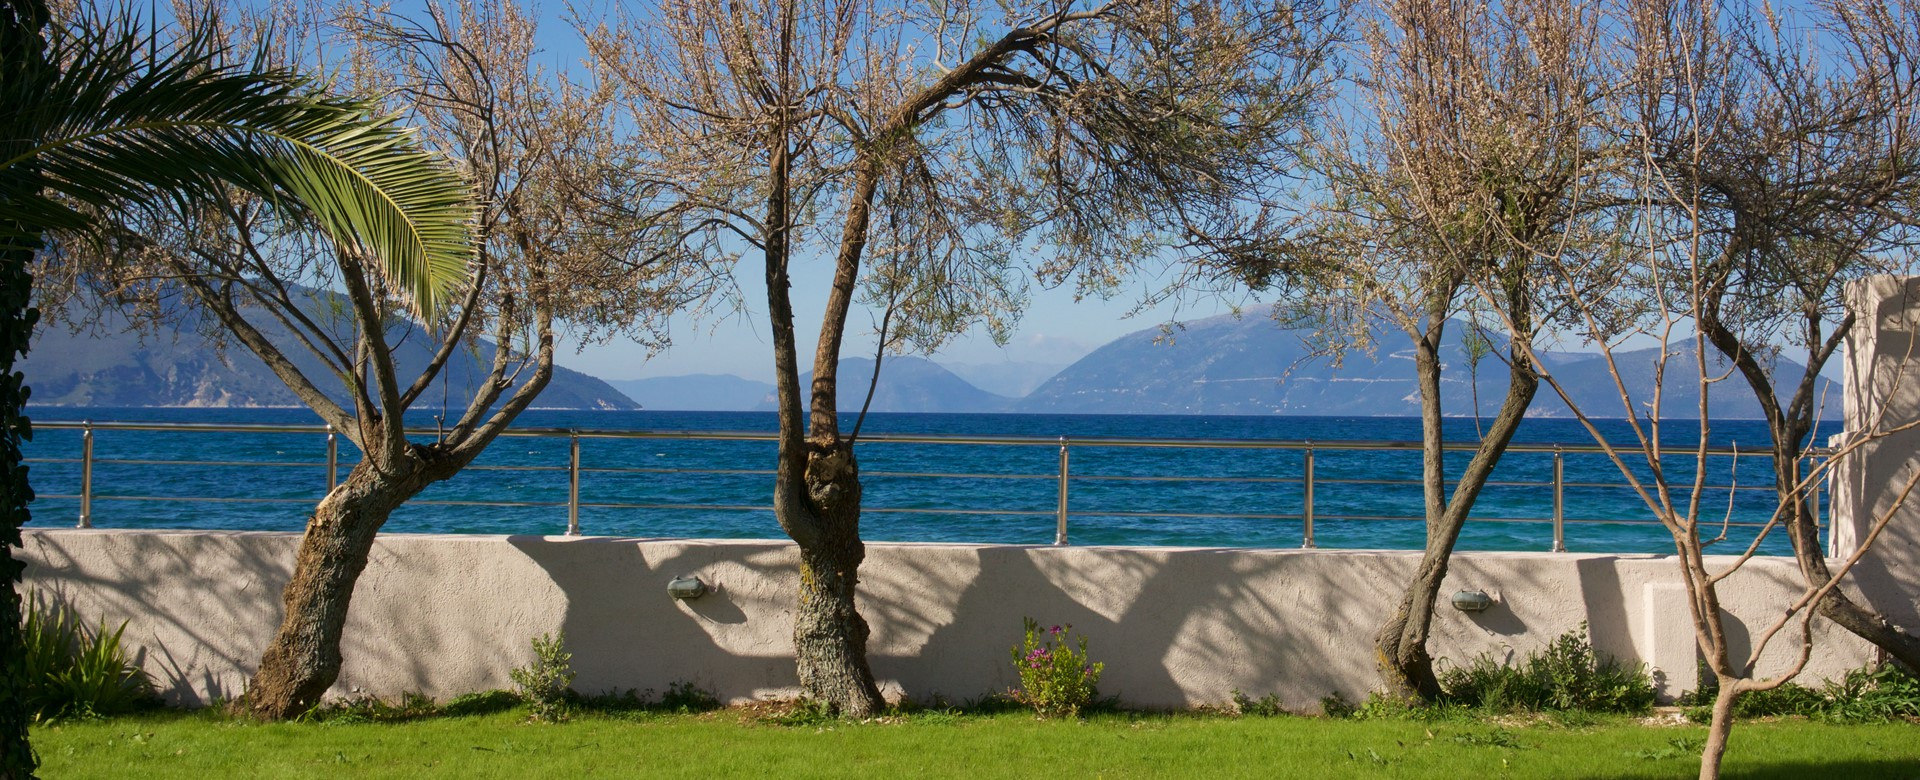 Beautiful views at end of the garden towards dedicated beach access at Villa Theano, Sami, Kefalonia, Greek Islands